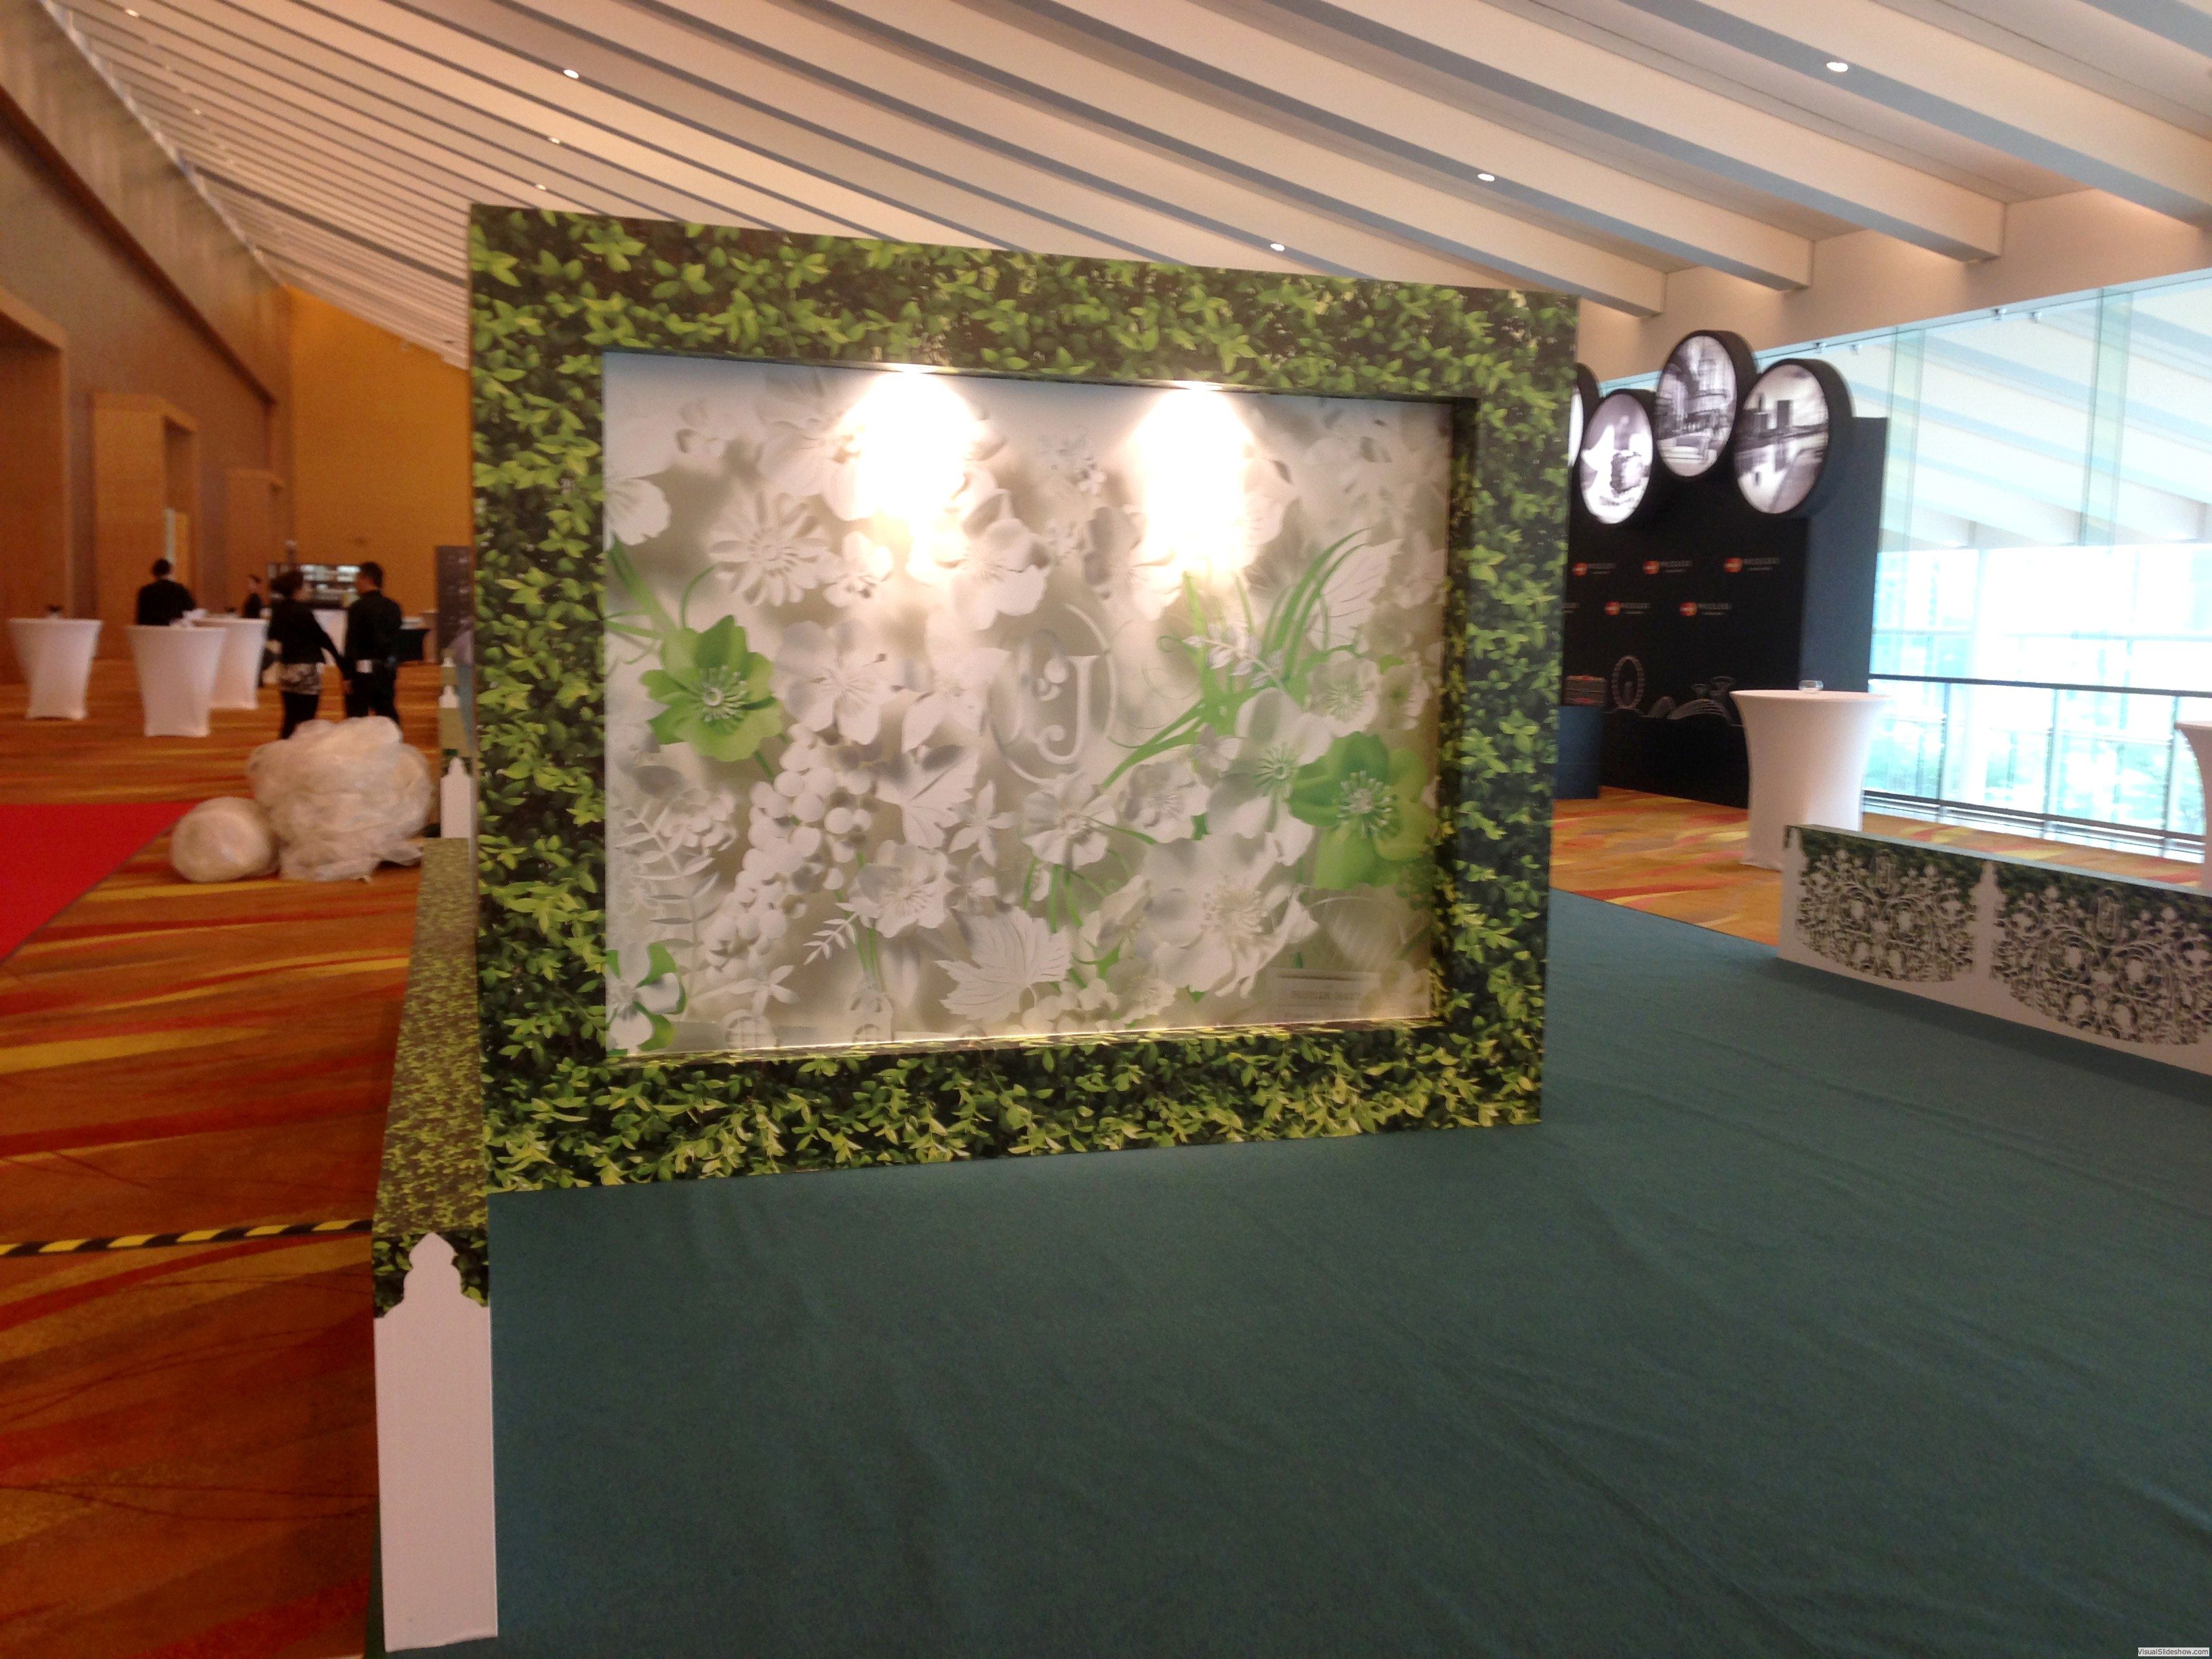 Perrier Jouet<br/><br/>Location: Marina Bay sand<br/>Display props, Backdrop, Digital print, Install